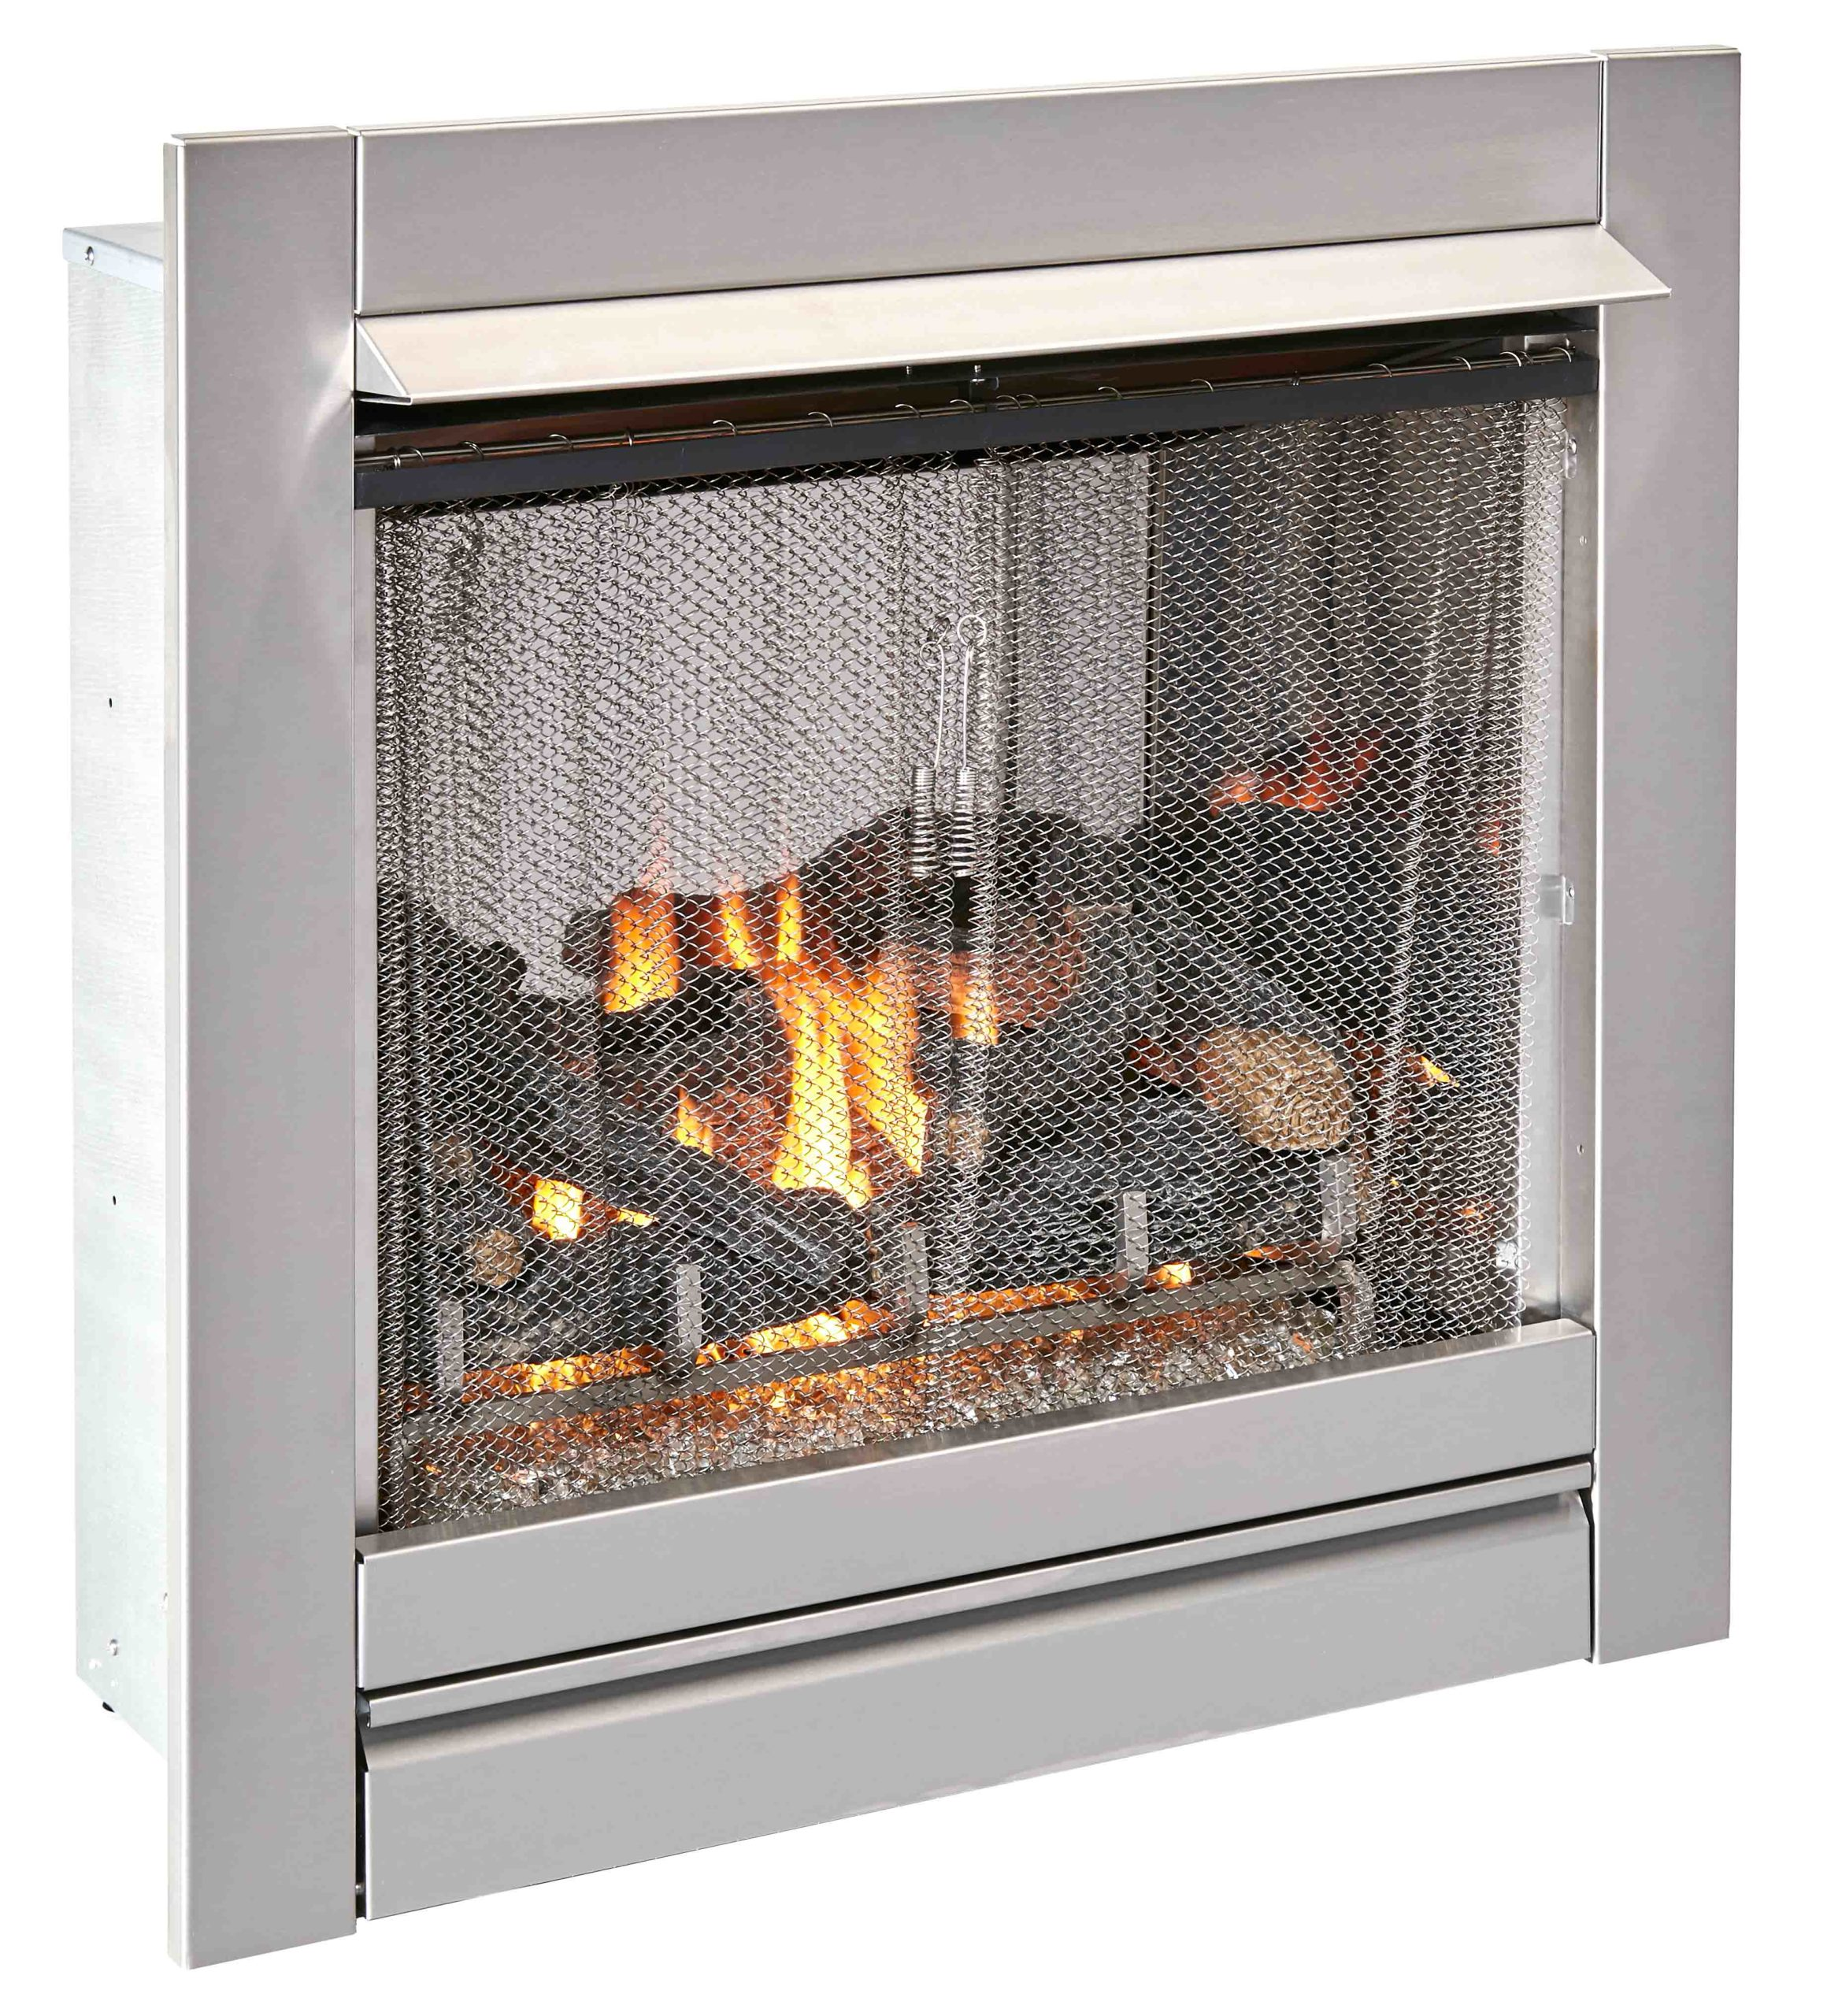 Duluth Forge Ventless Stainless Outdoor Gas Fireplace ...